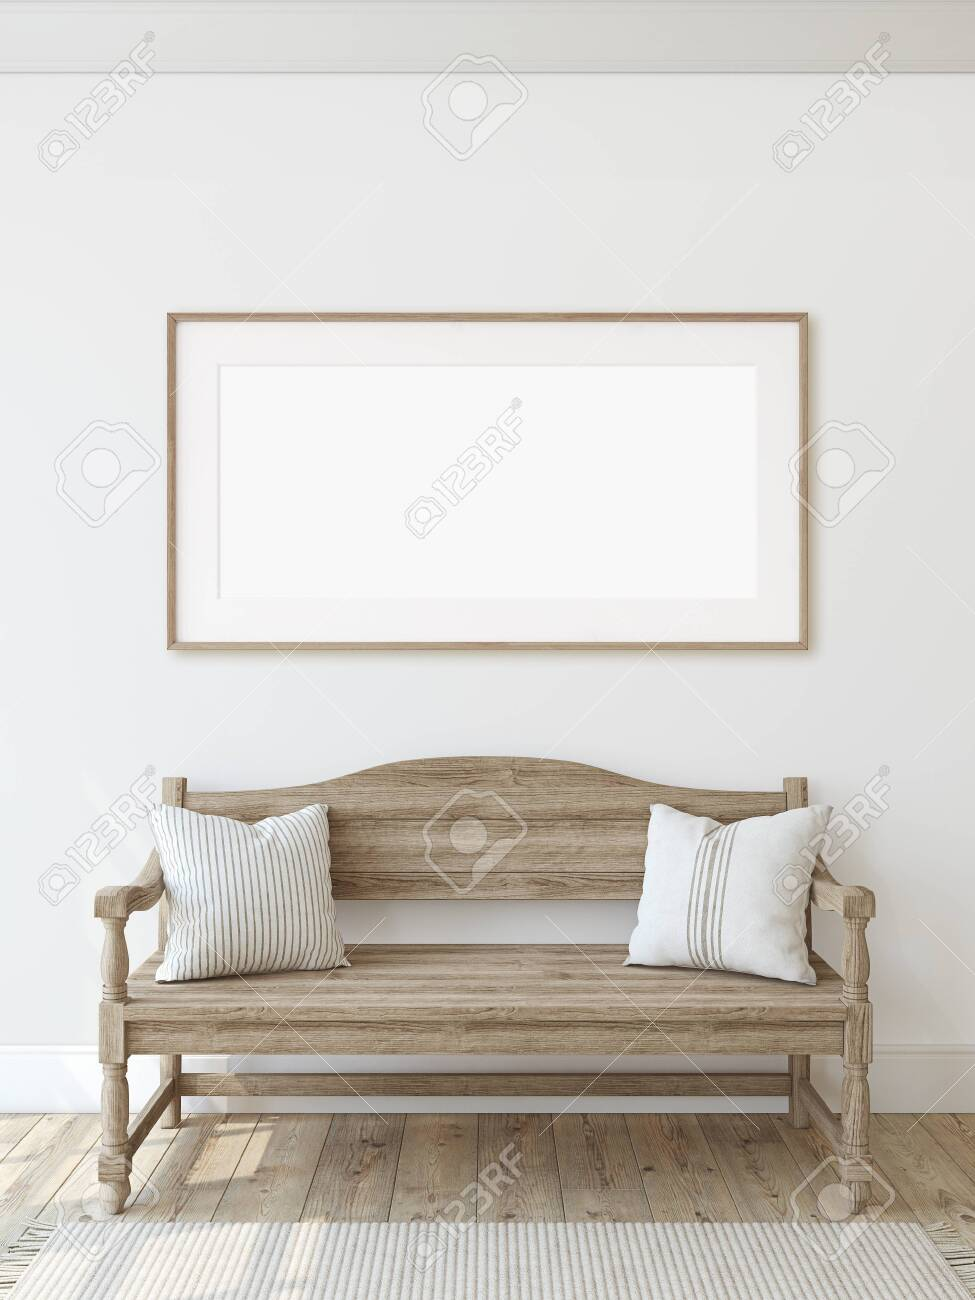 Farmhouse entryway. Wooden bench near white wall. Frame mockup. Wooden frame on the wall. 3d render. - 128722507